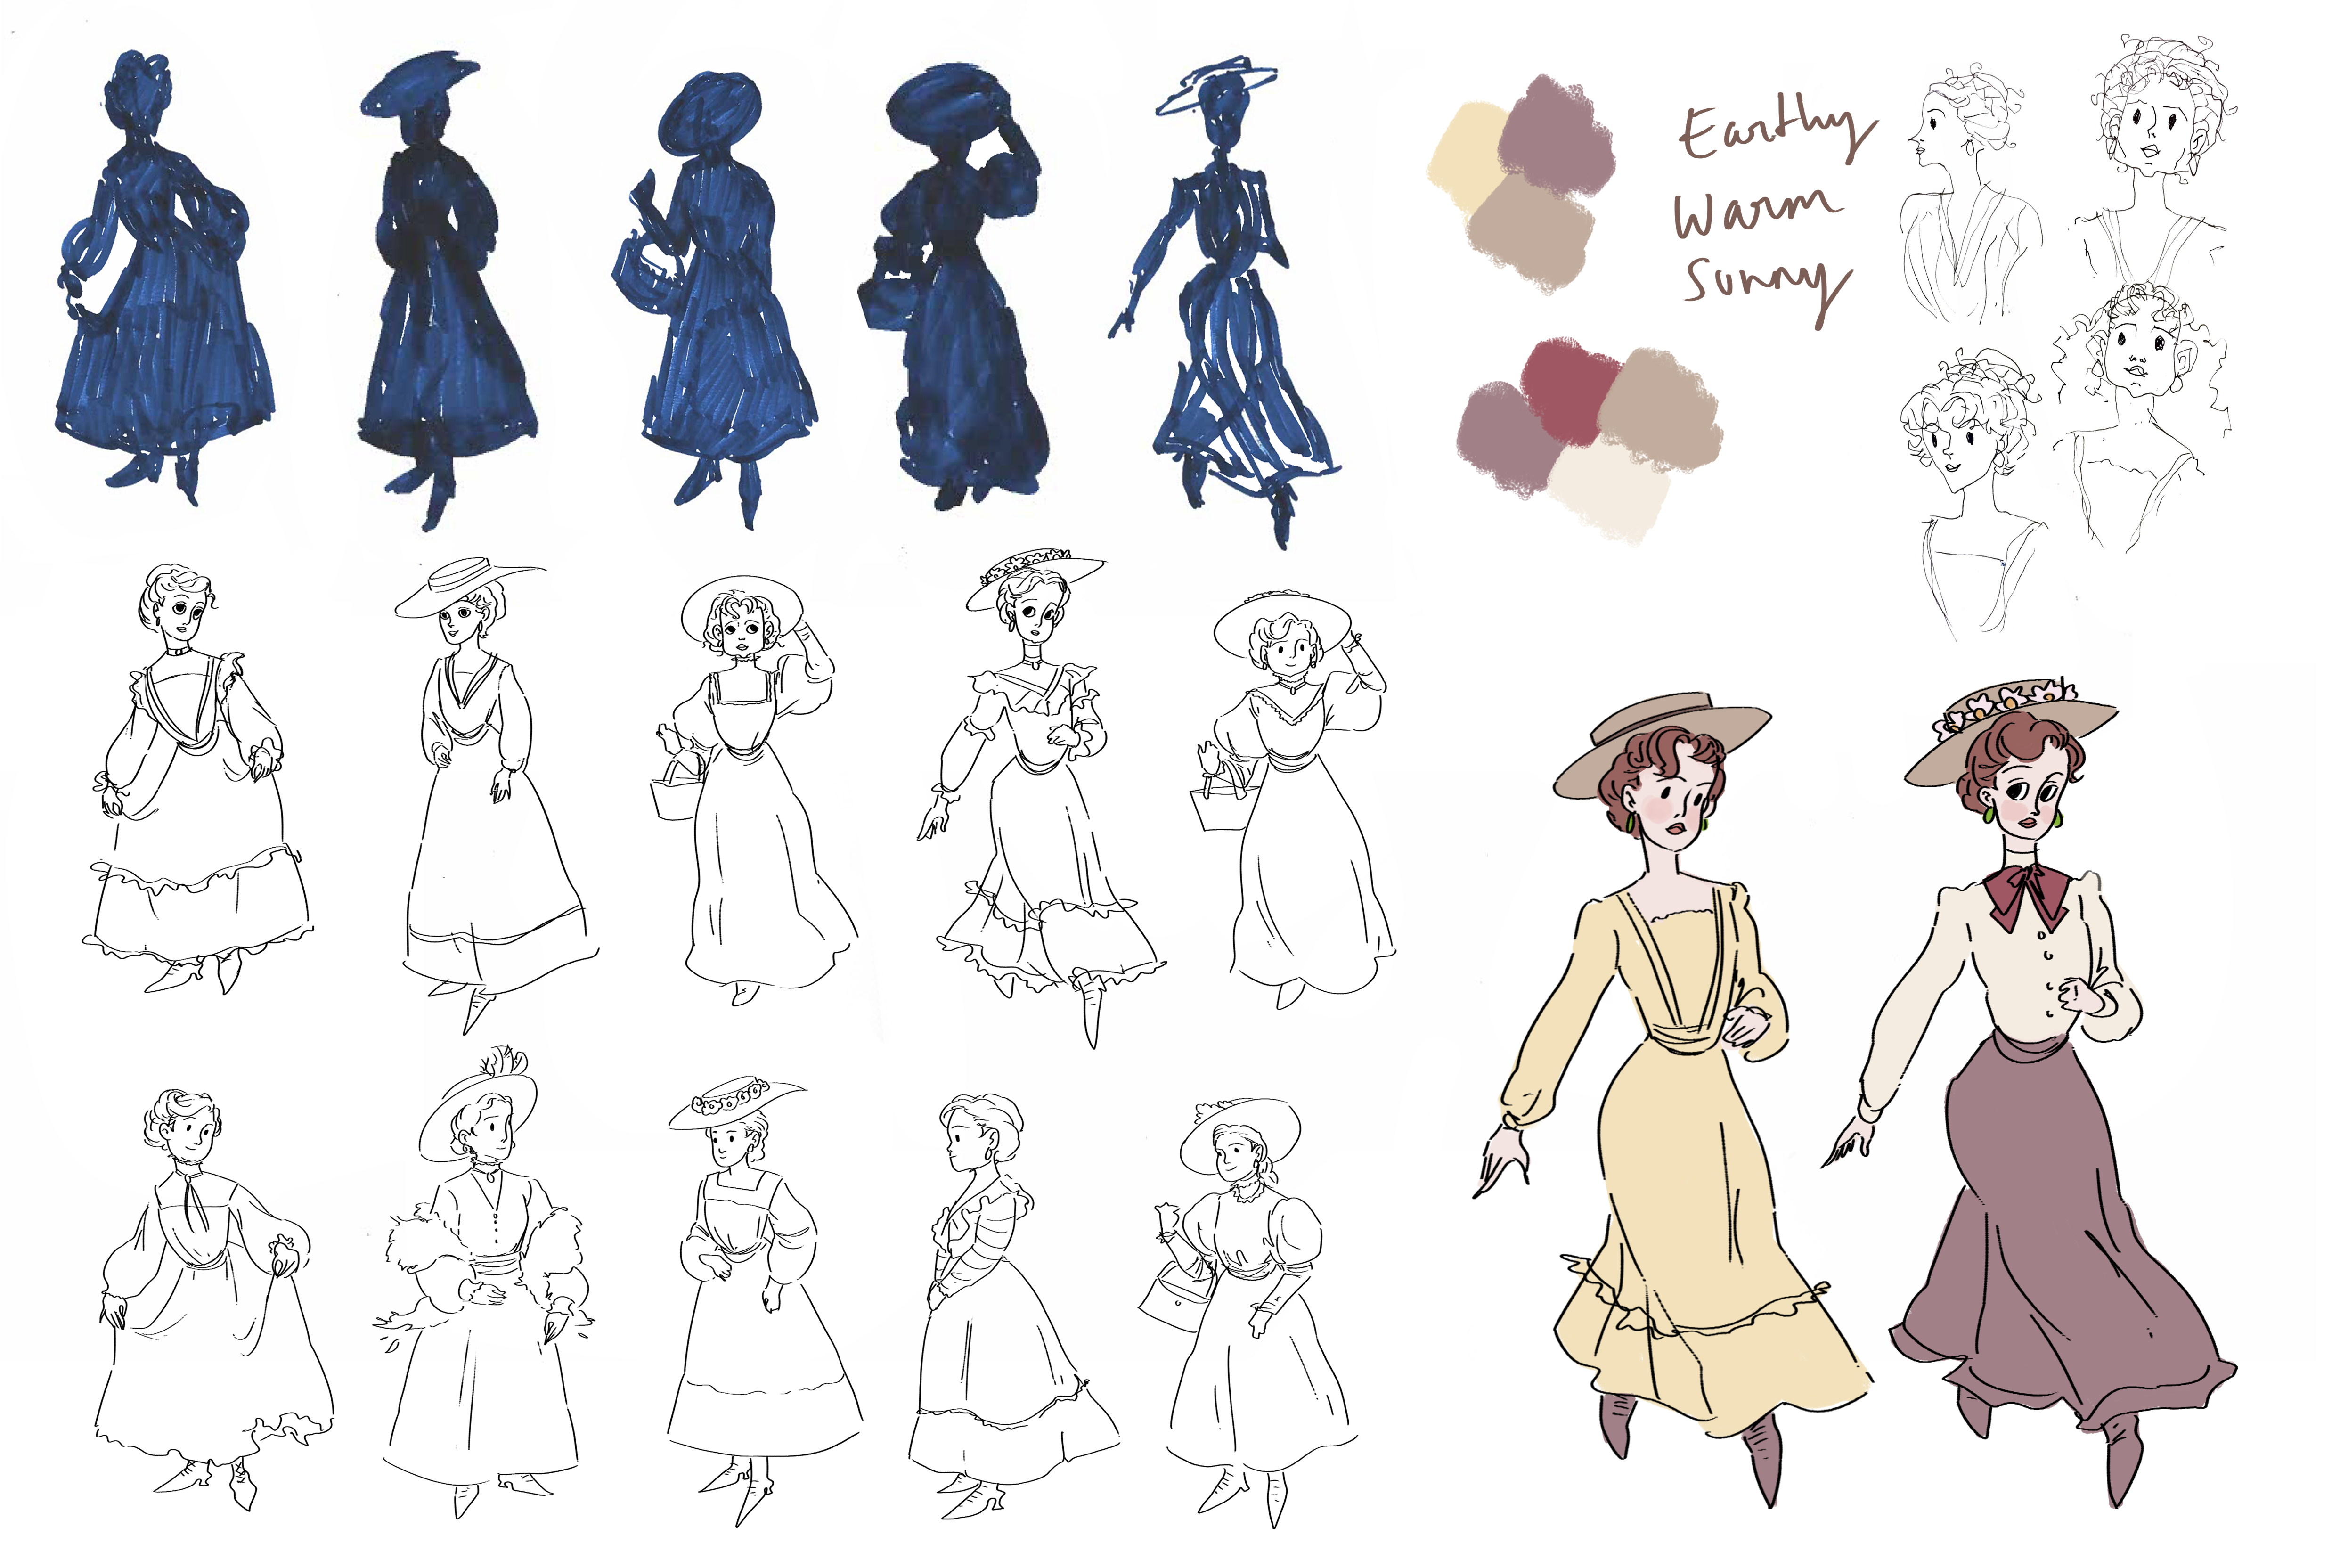 Mary A_characterdesign